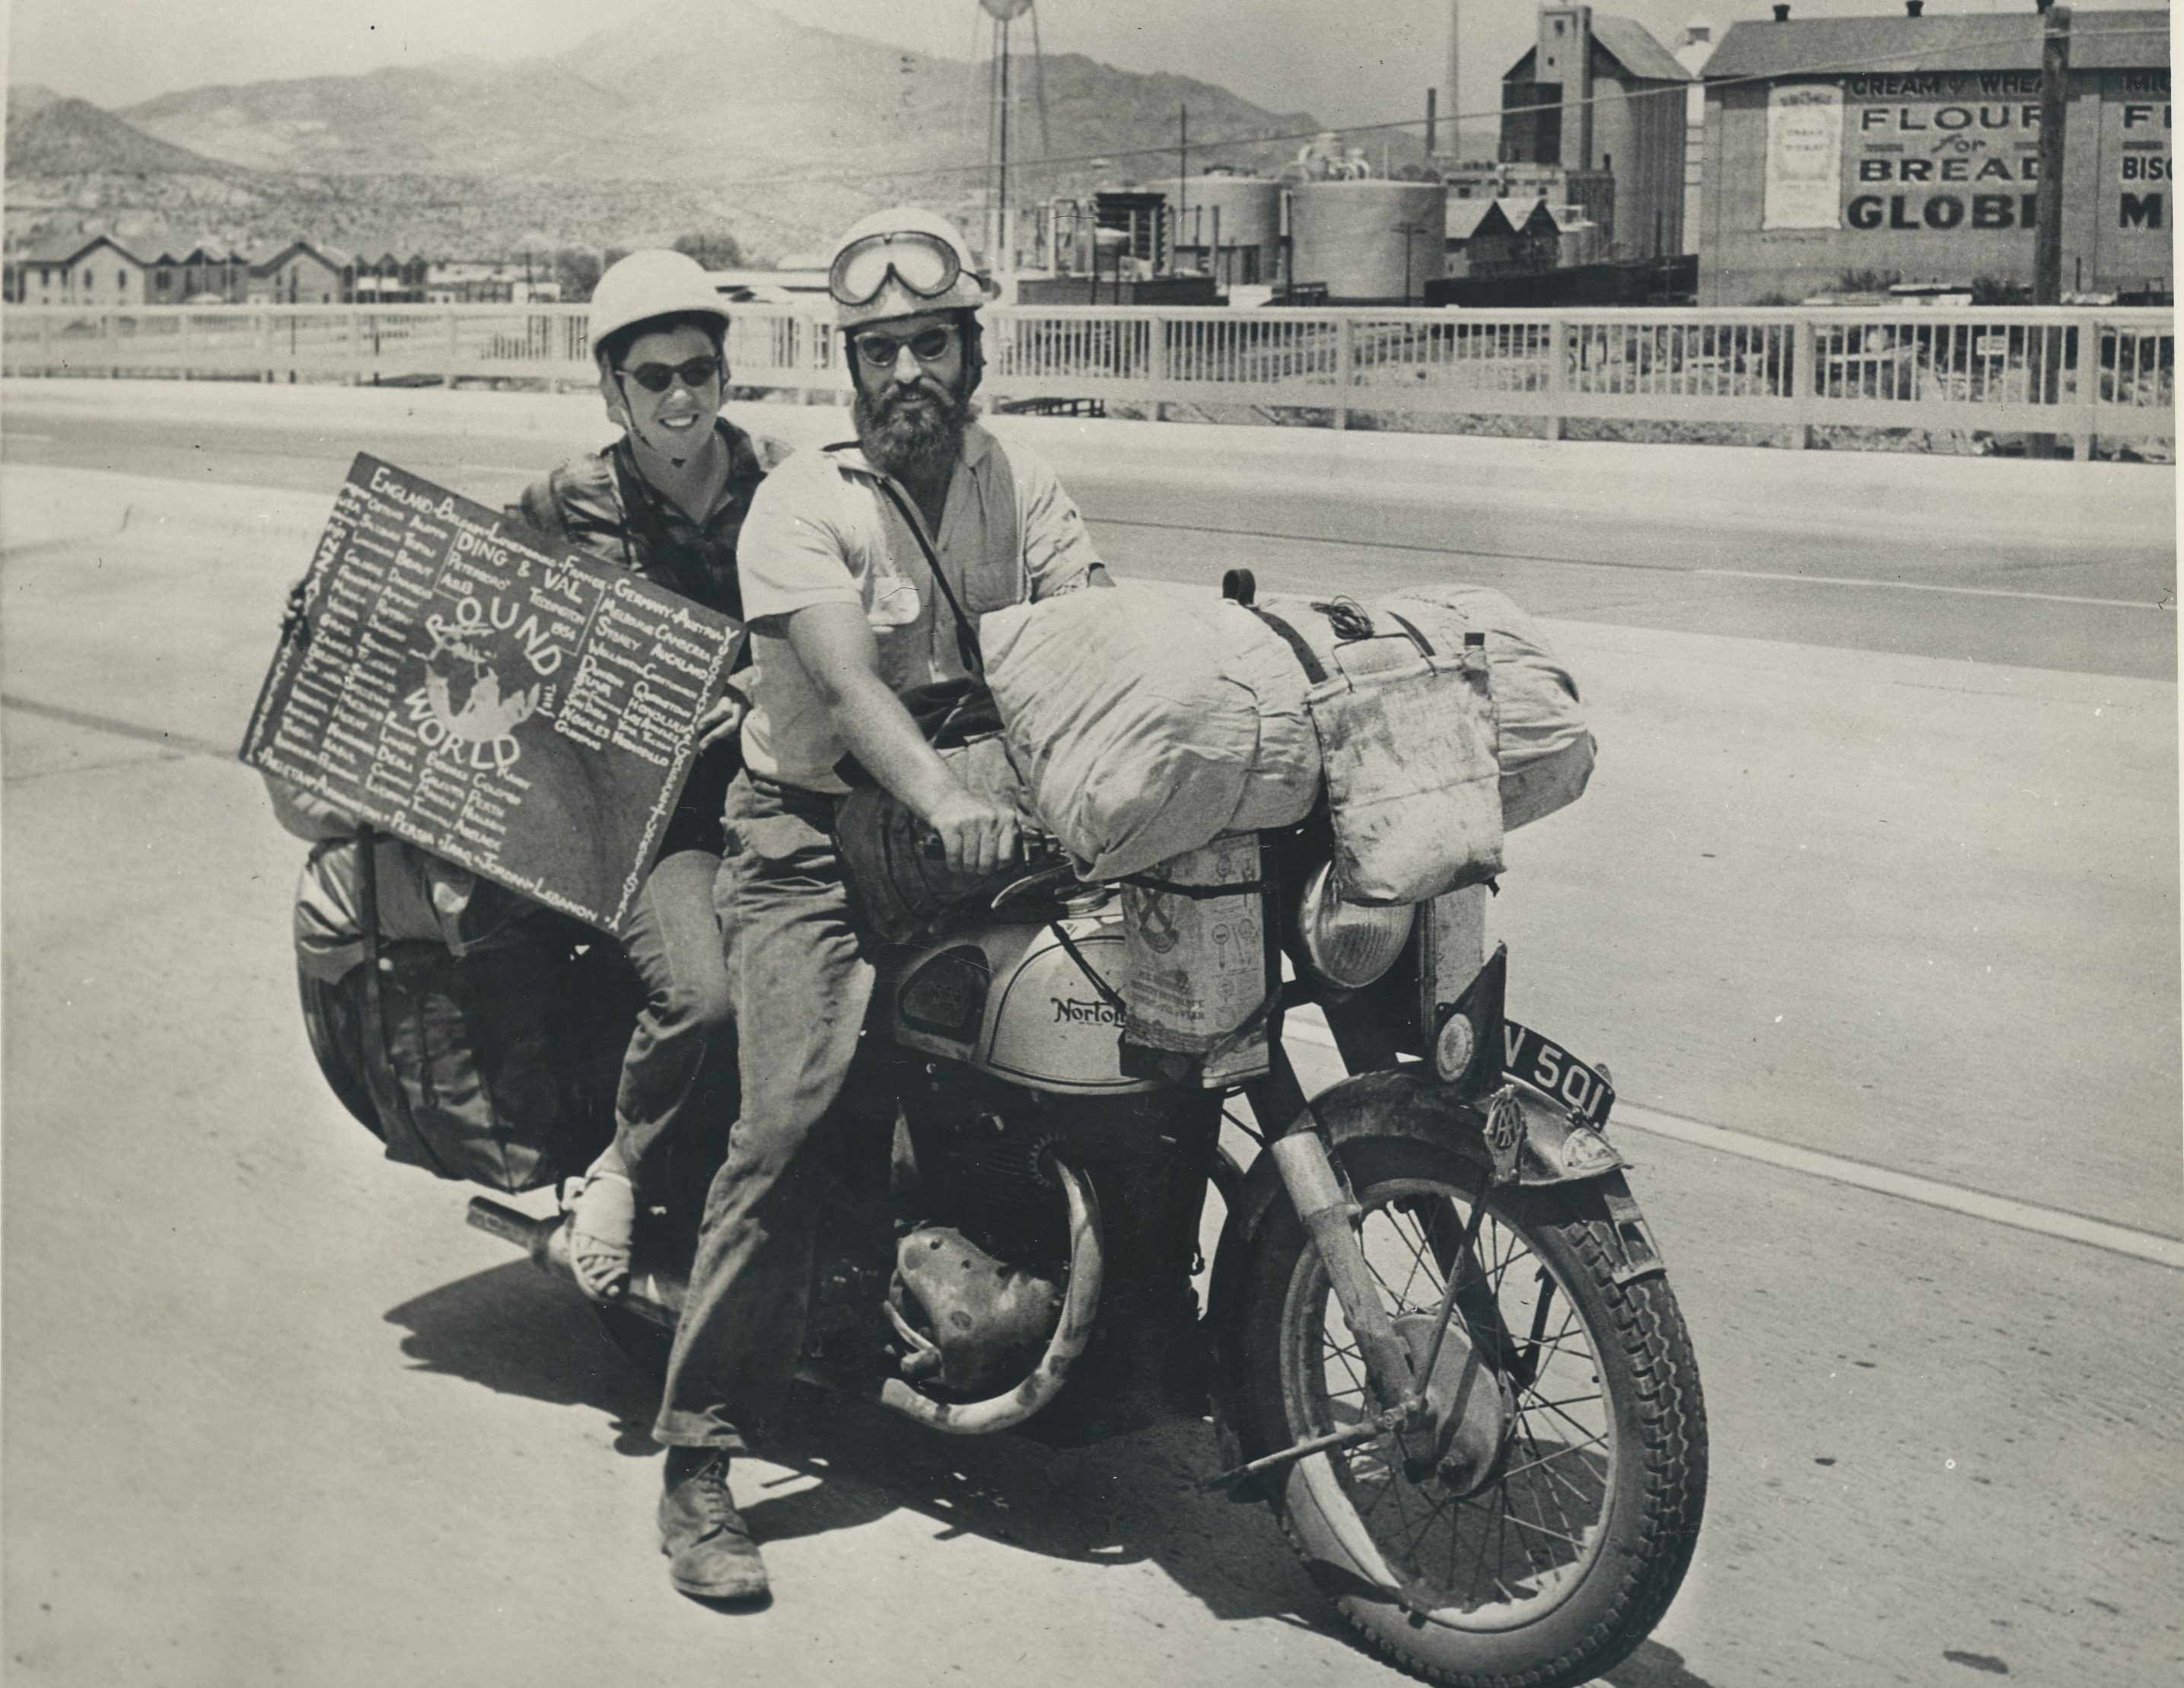 Ernest Bell's 1954 motorcycle adventure